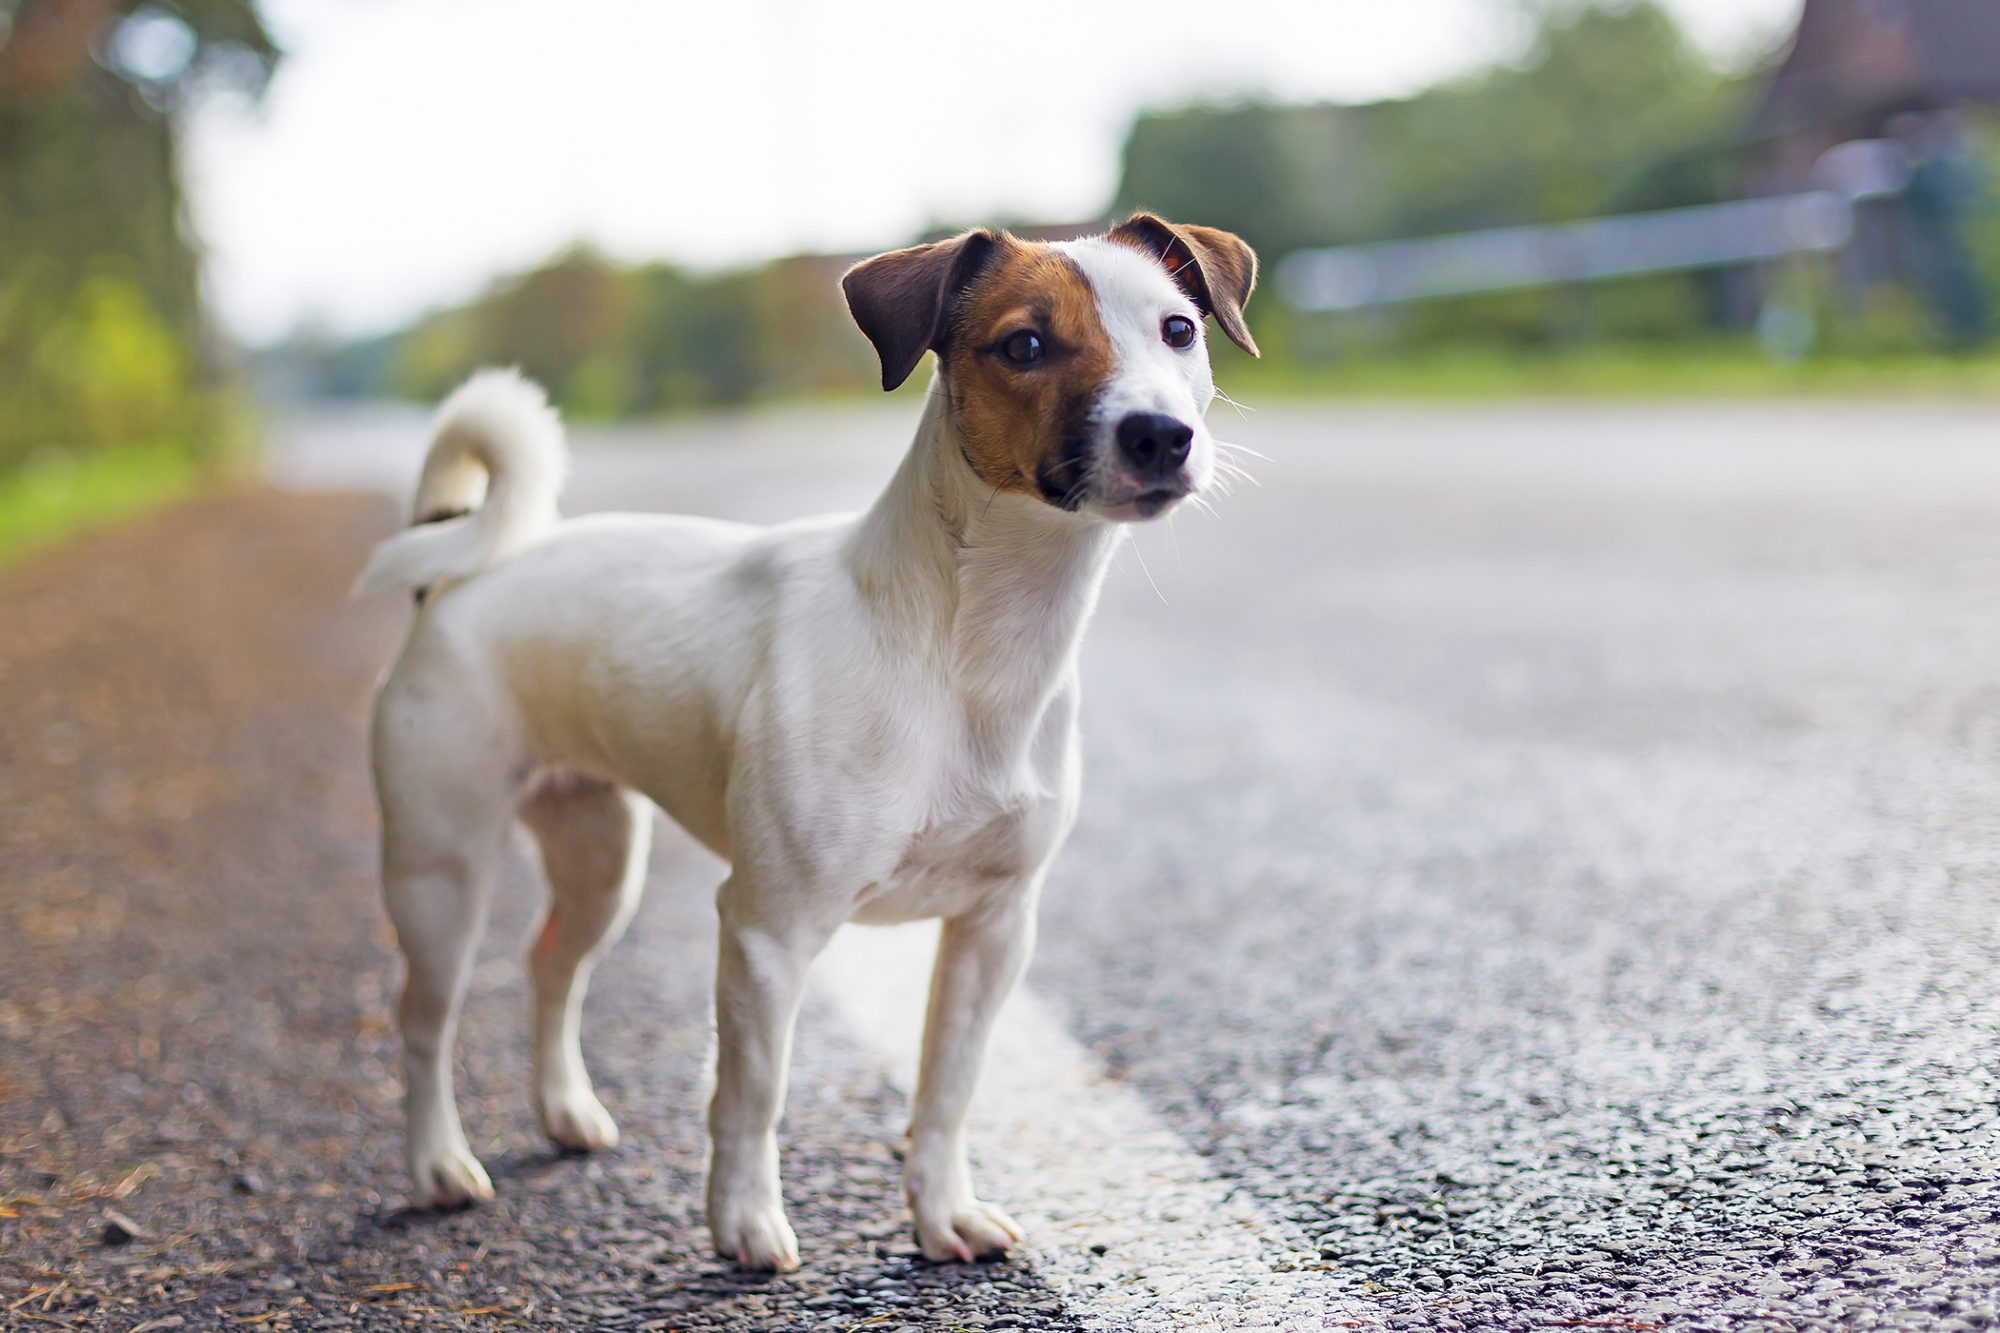 jack russell terrier stands next to asphalt road